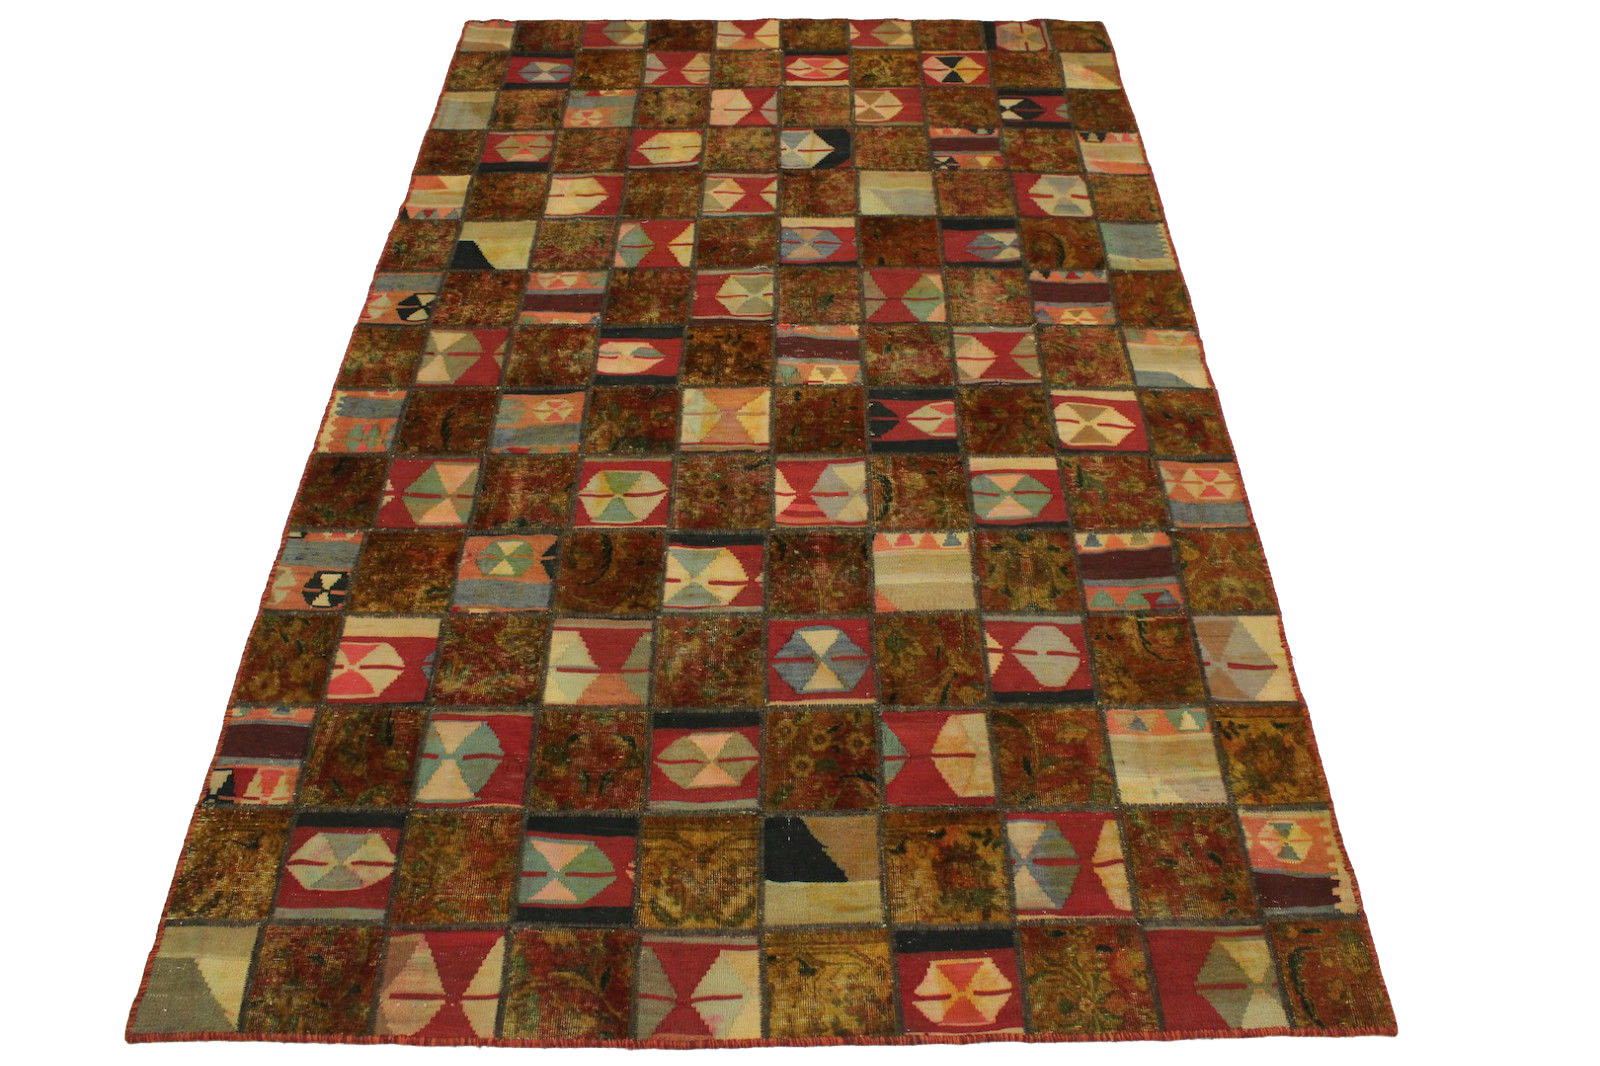 Patchwork Teppich Rot Curry in 300x200cm (10012211) bei